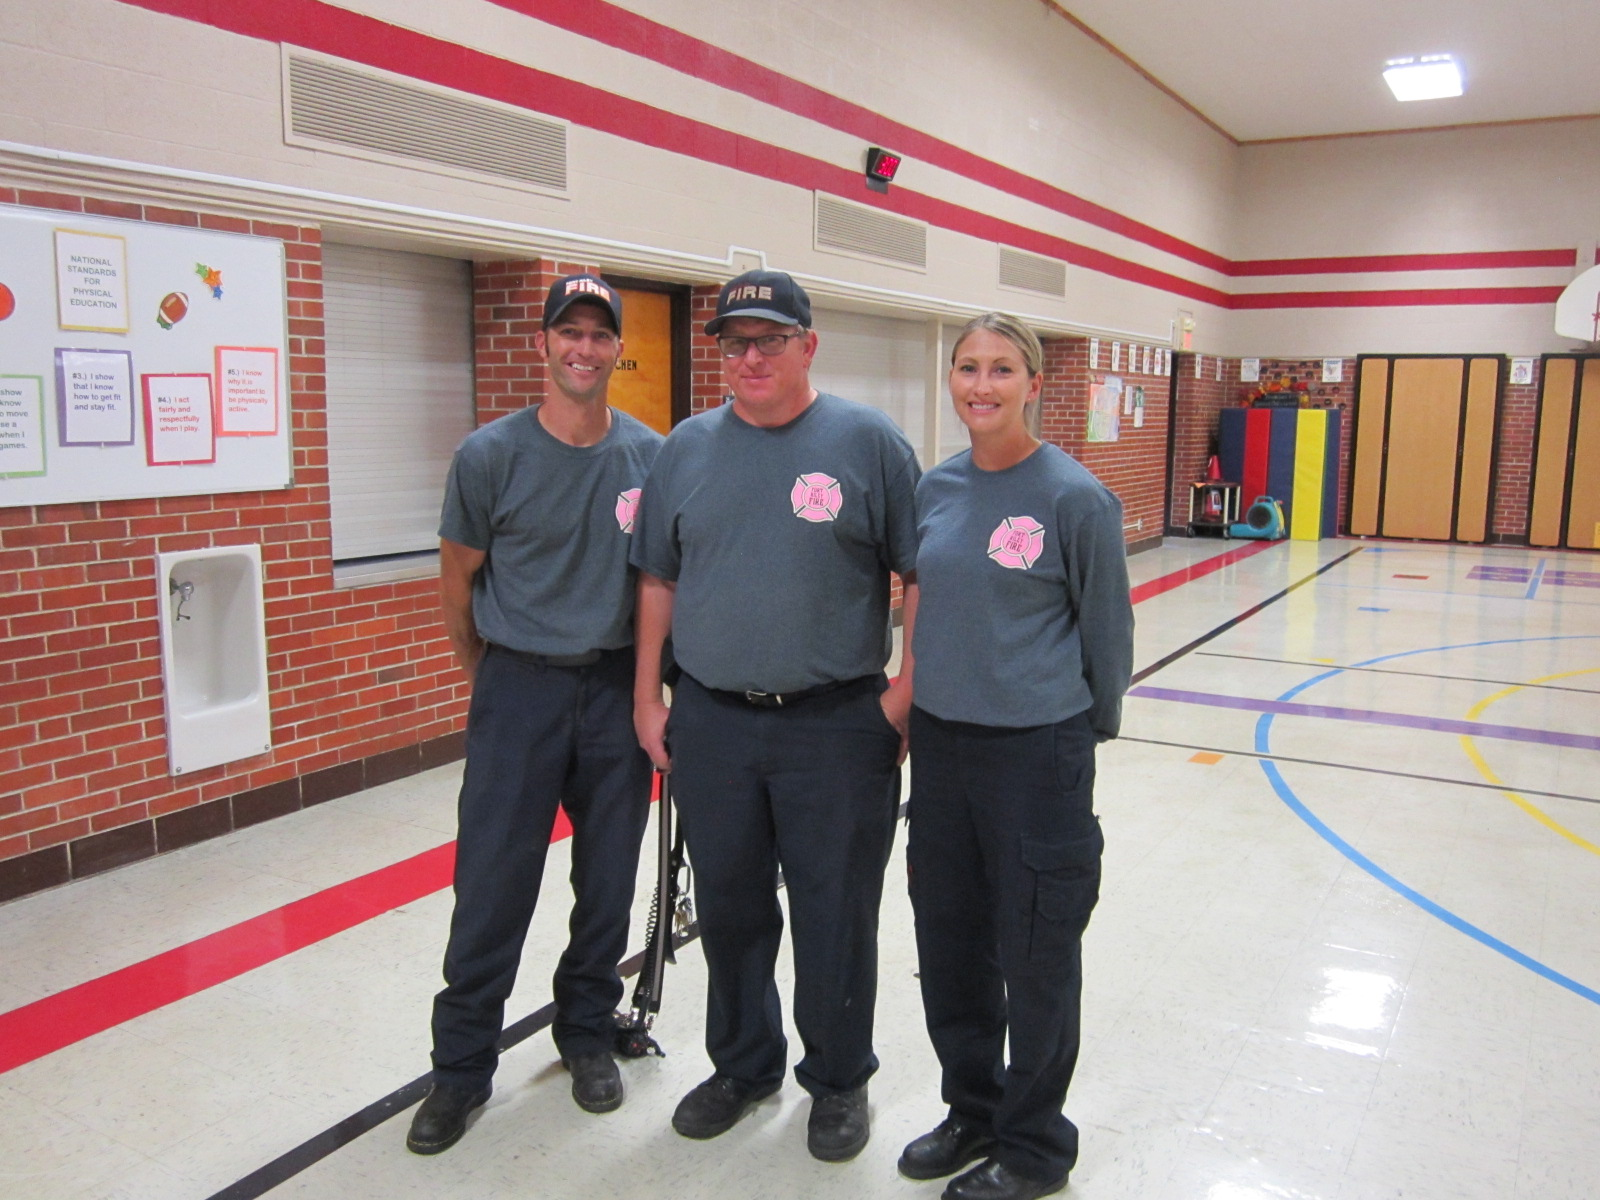 Fire Fighters who taught fire safety